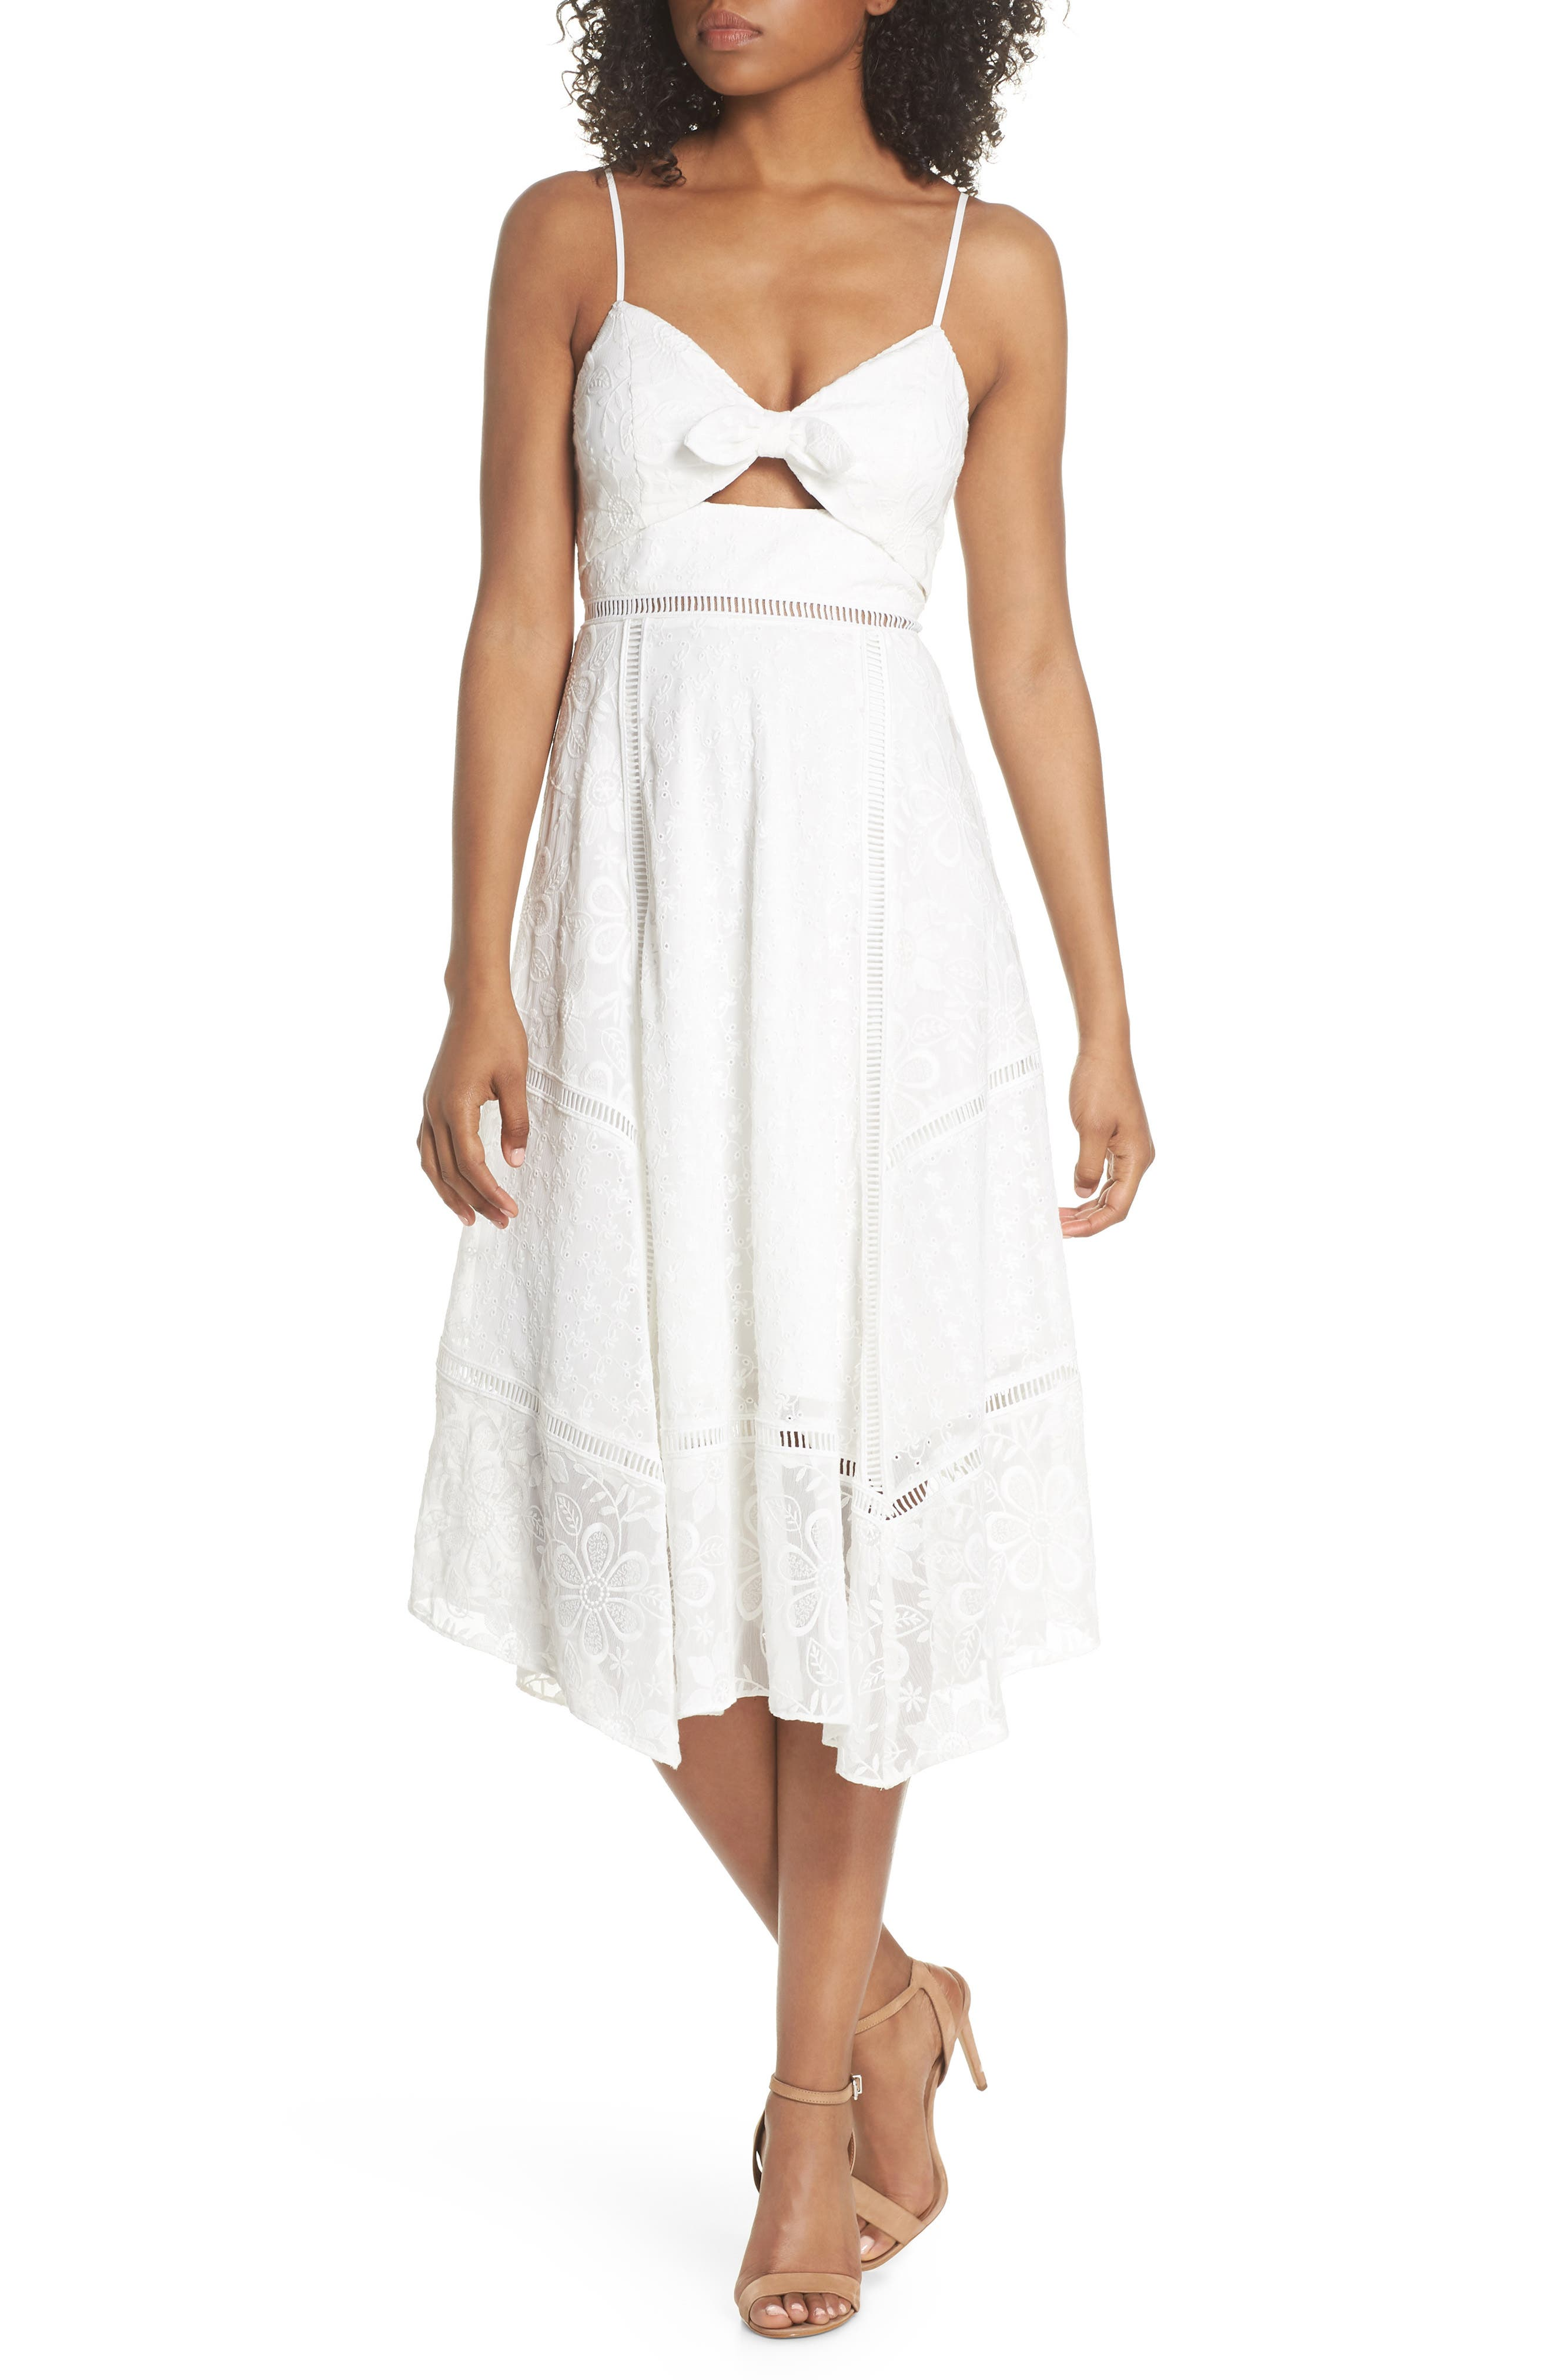 EVER NEW Broderie Anglaise Knot Detail Dress, Main, color, 100